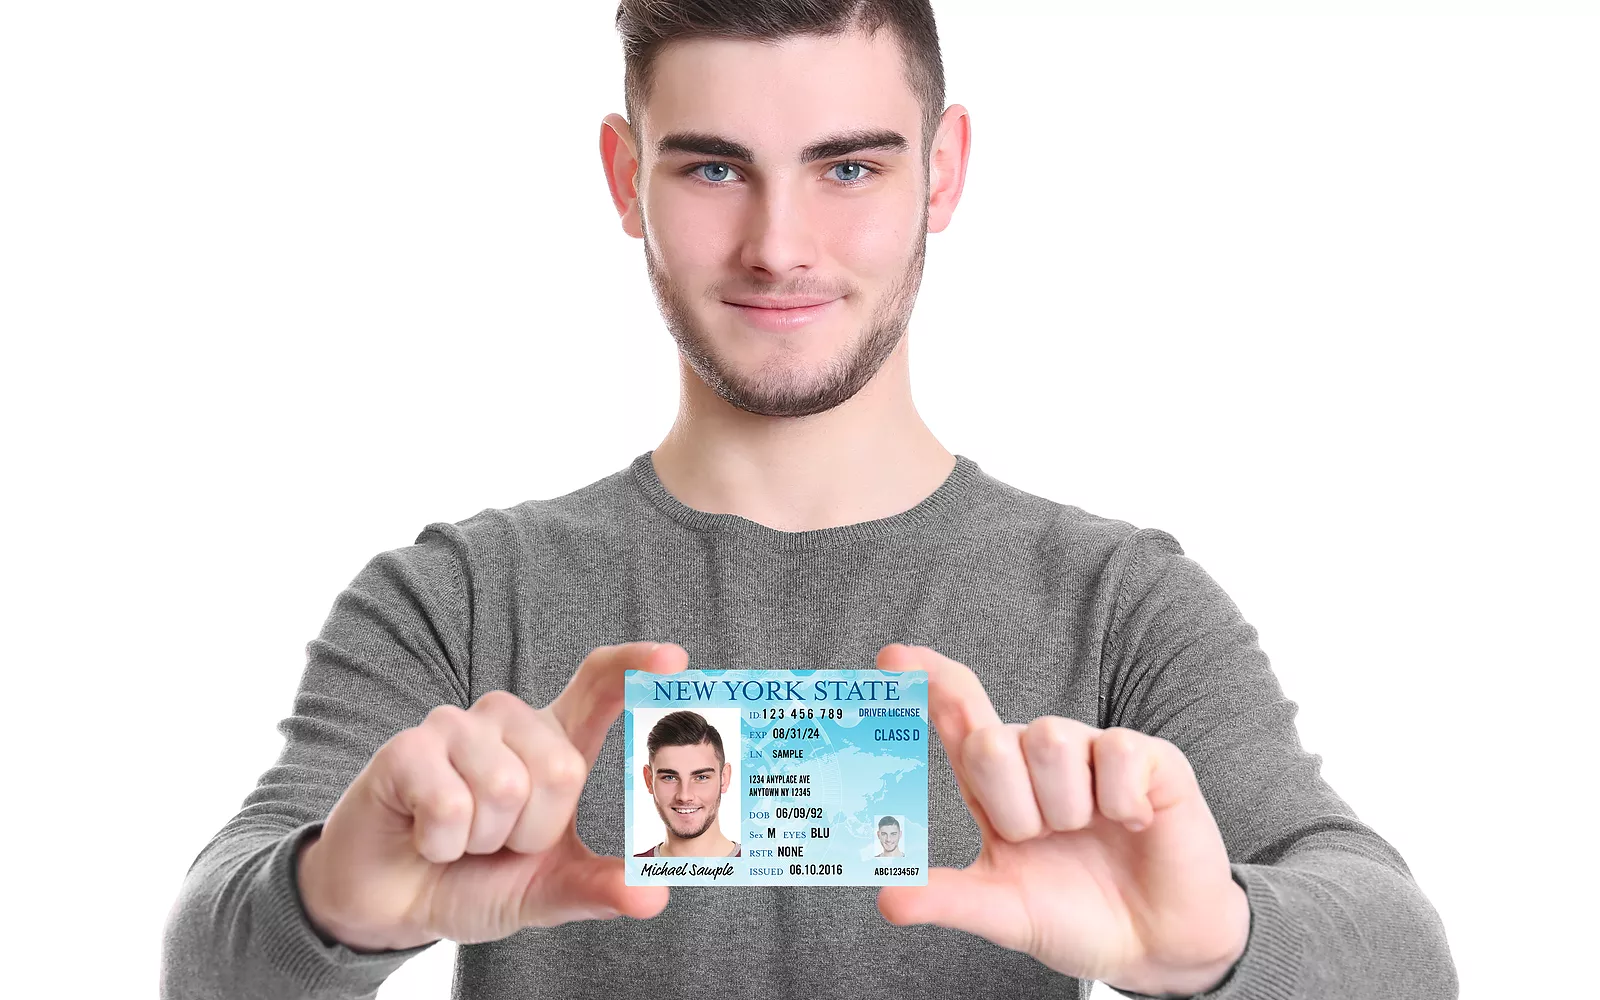 Staff's New Year's Resolution For 2019: Actually Check IDs